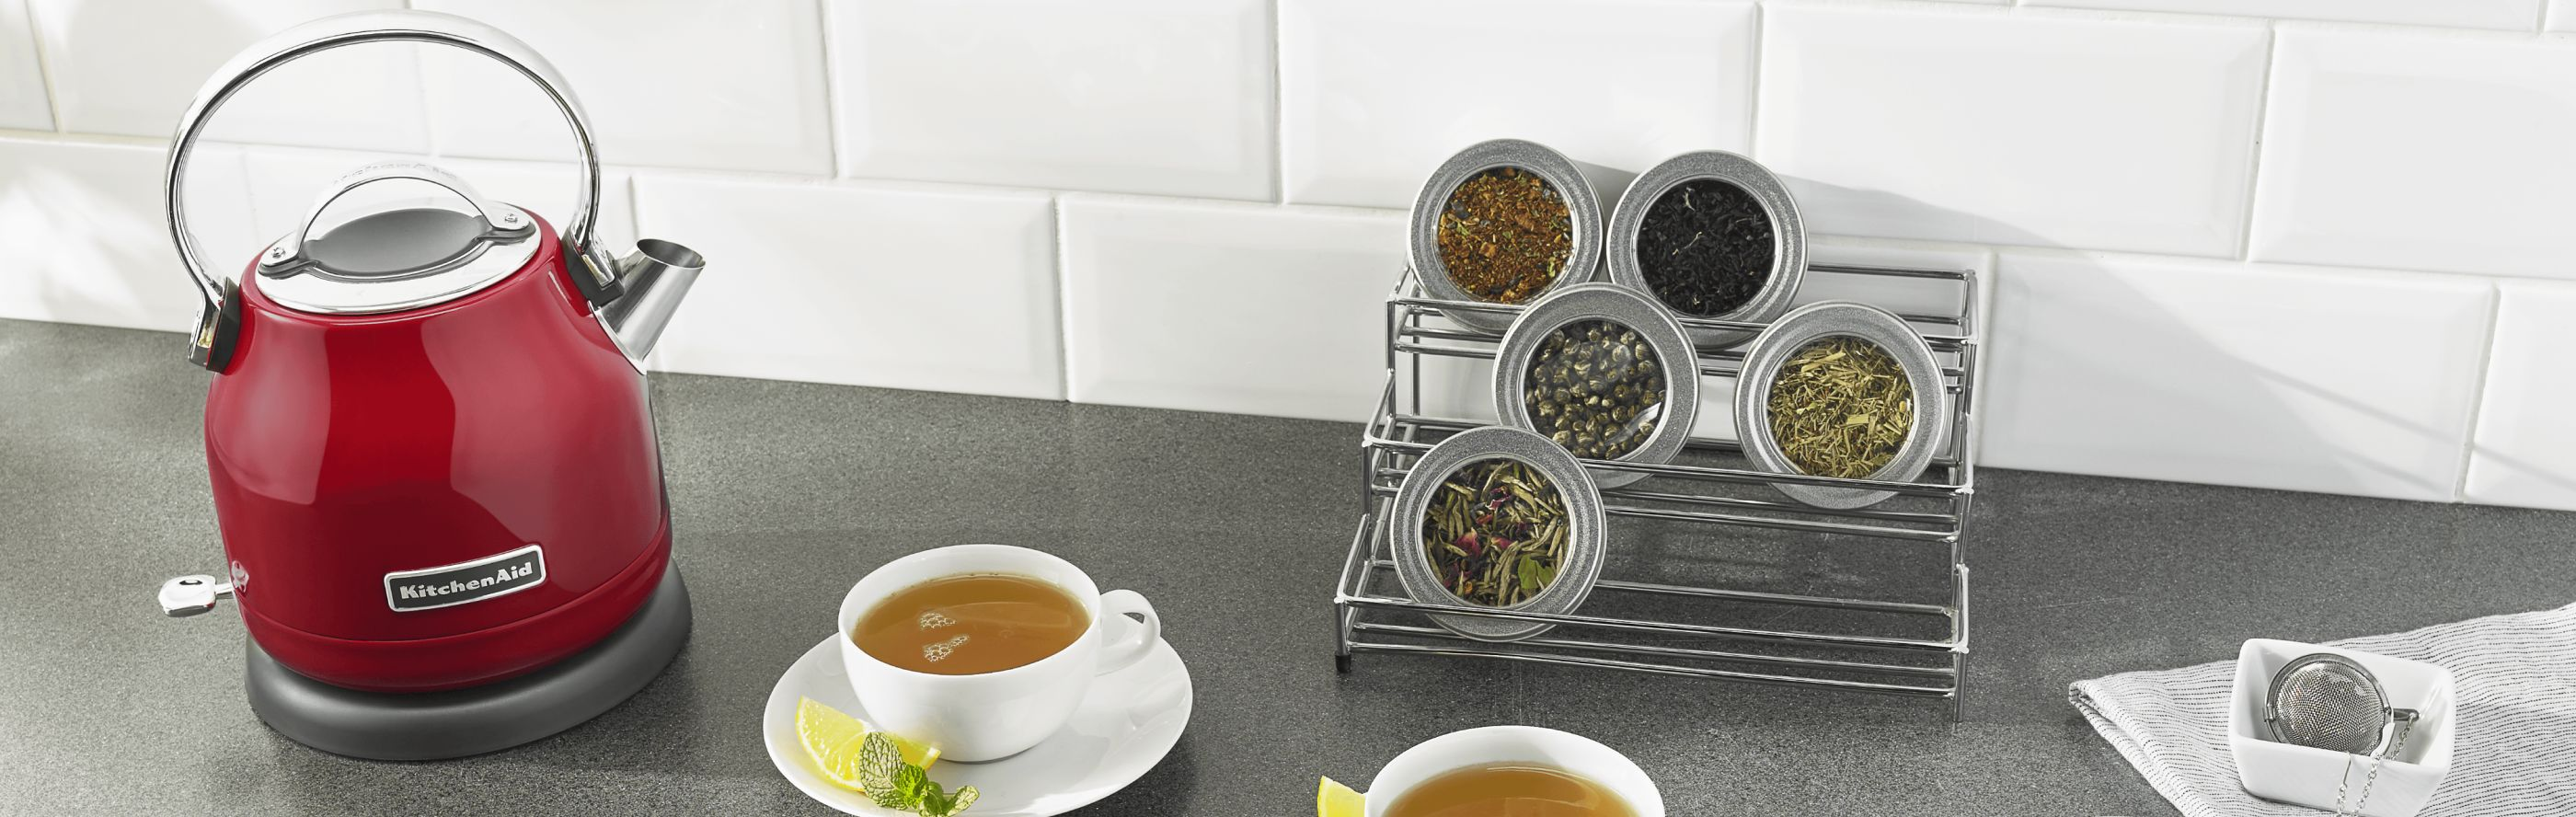 KitchenAid® electric tea kettle on countertop with cups of tea and containers of loose tea leaves.